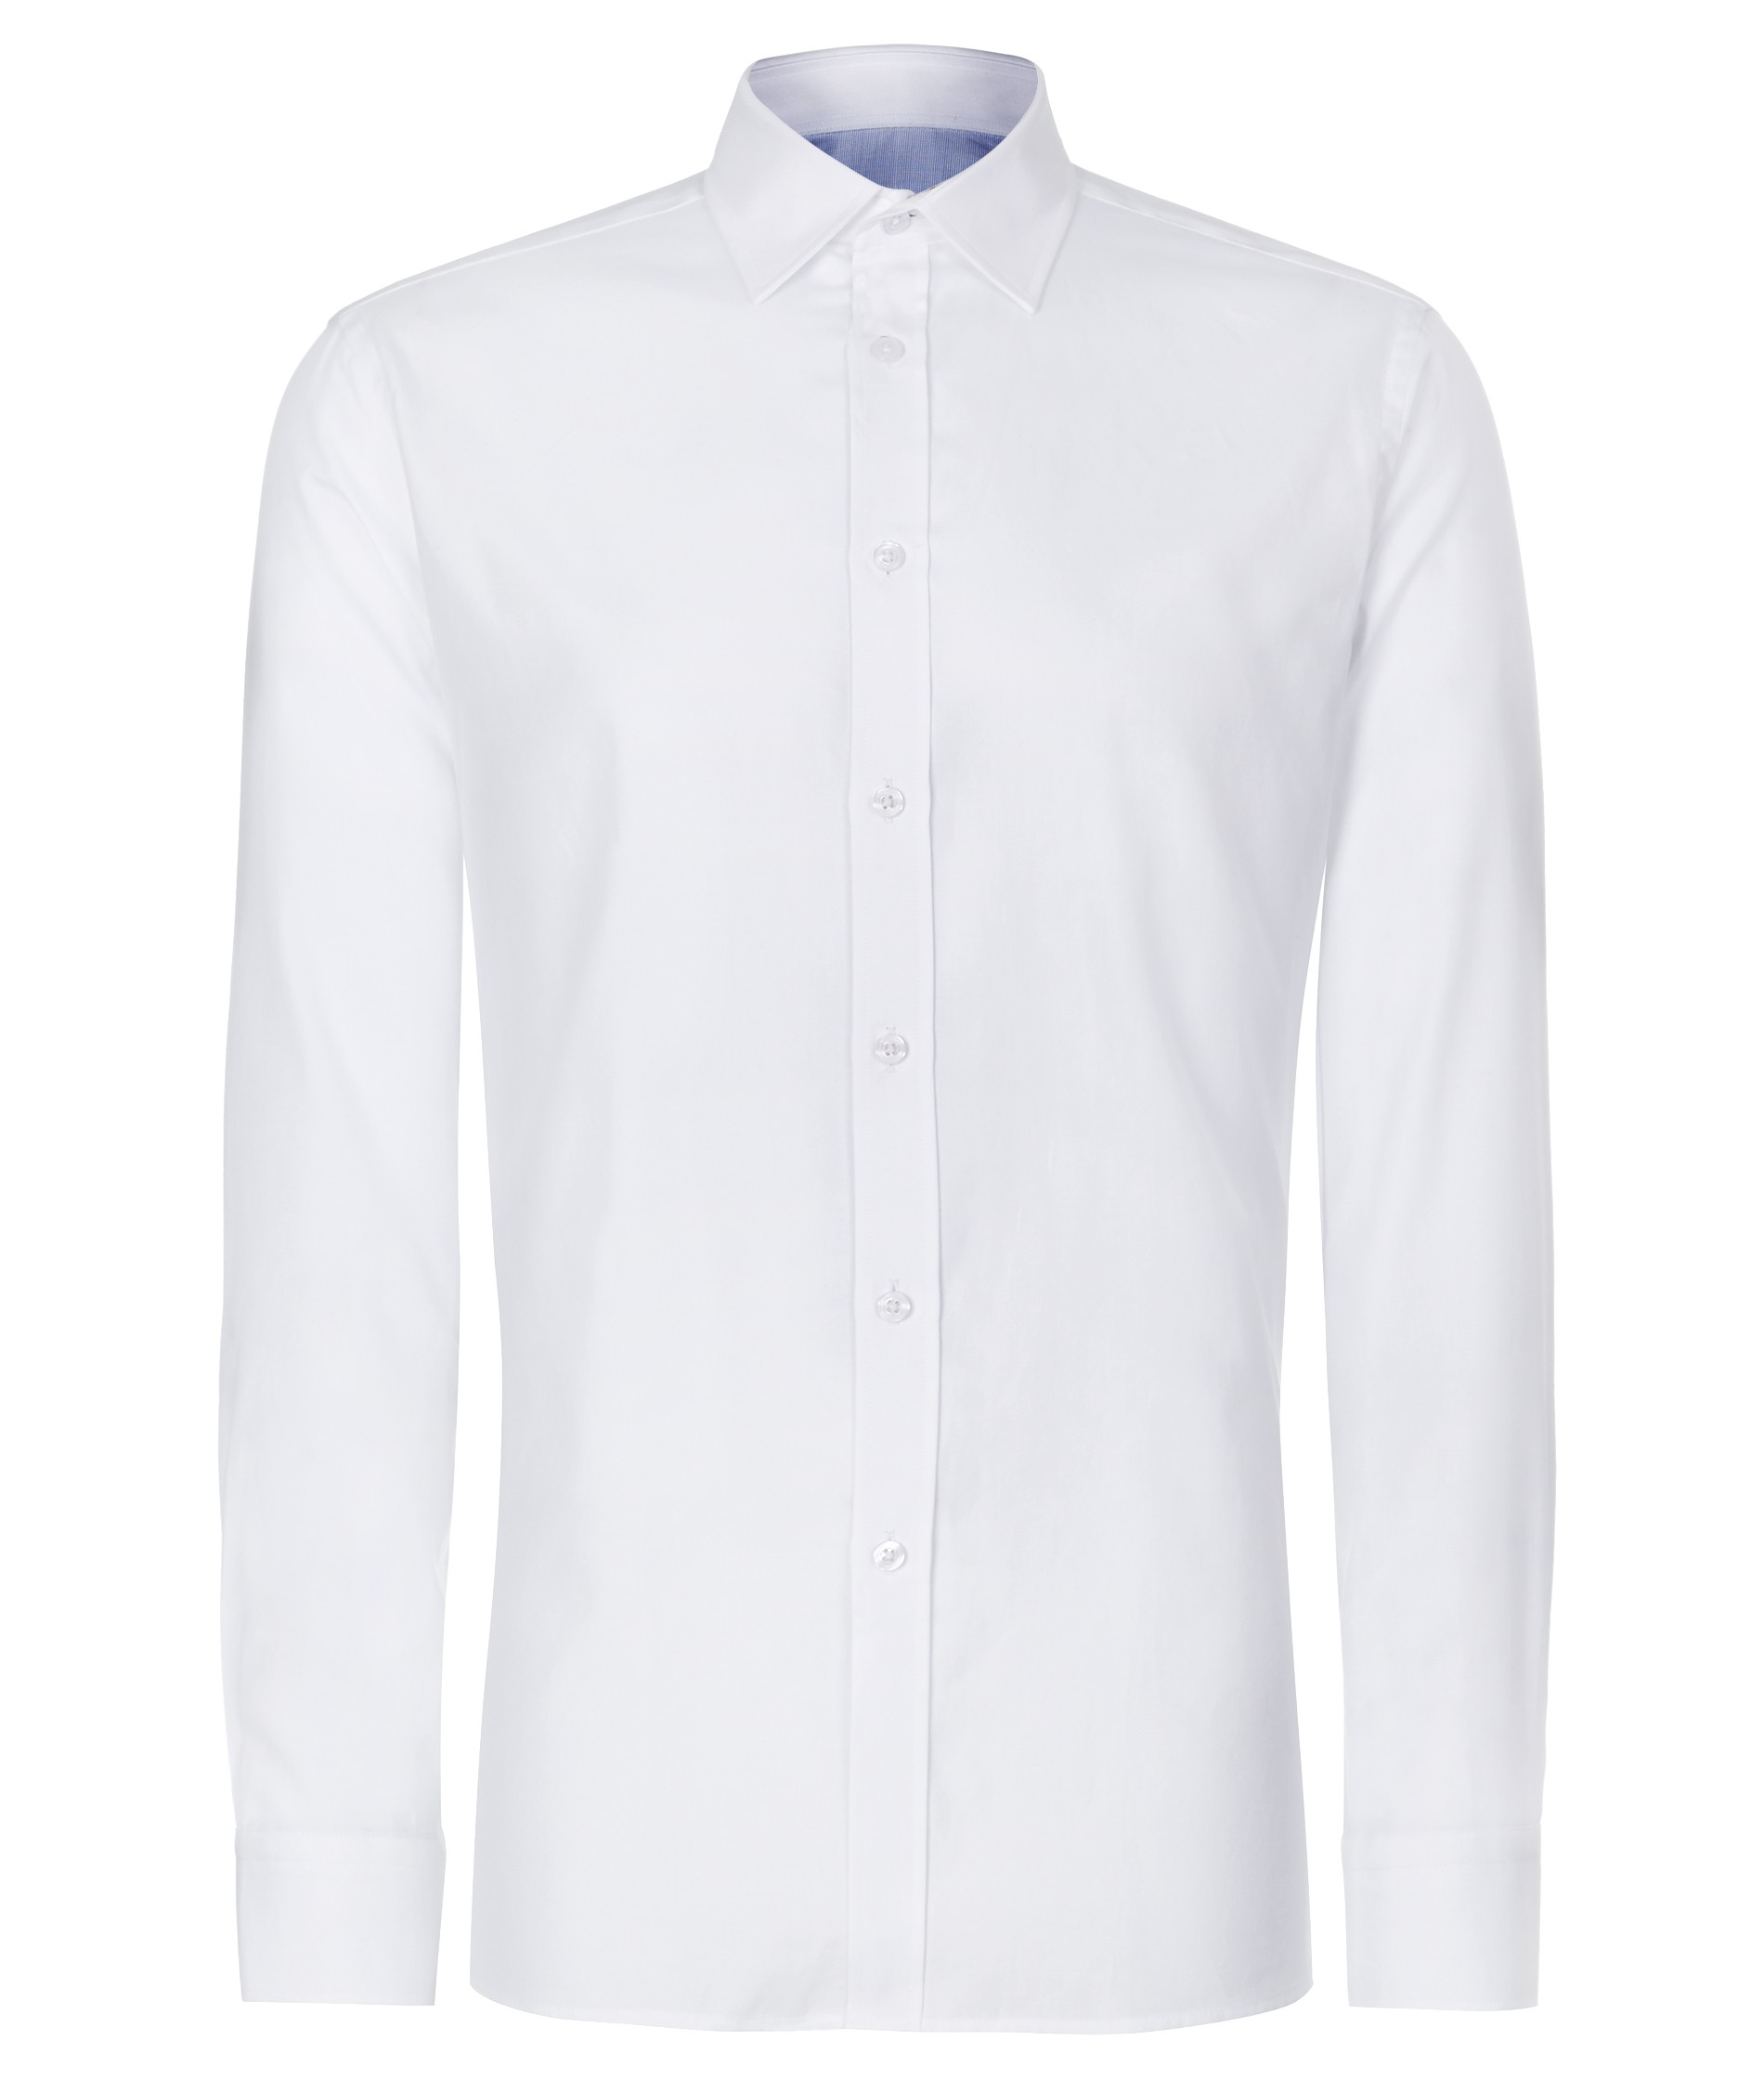 Nigel Hall White Regular FIt Classic Style Formal Shirt (Cell)